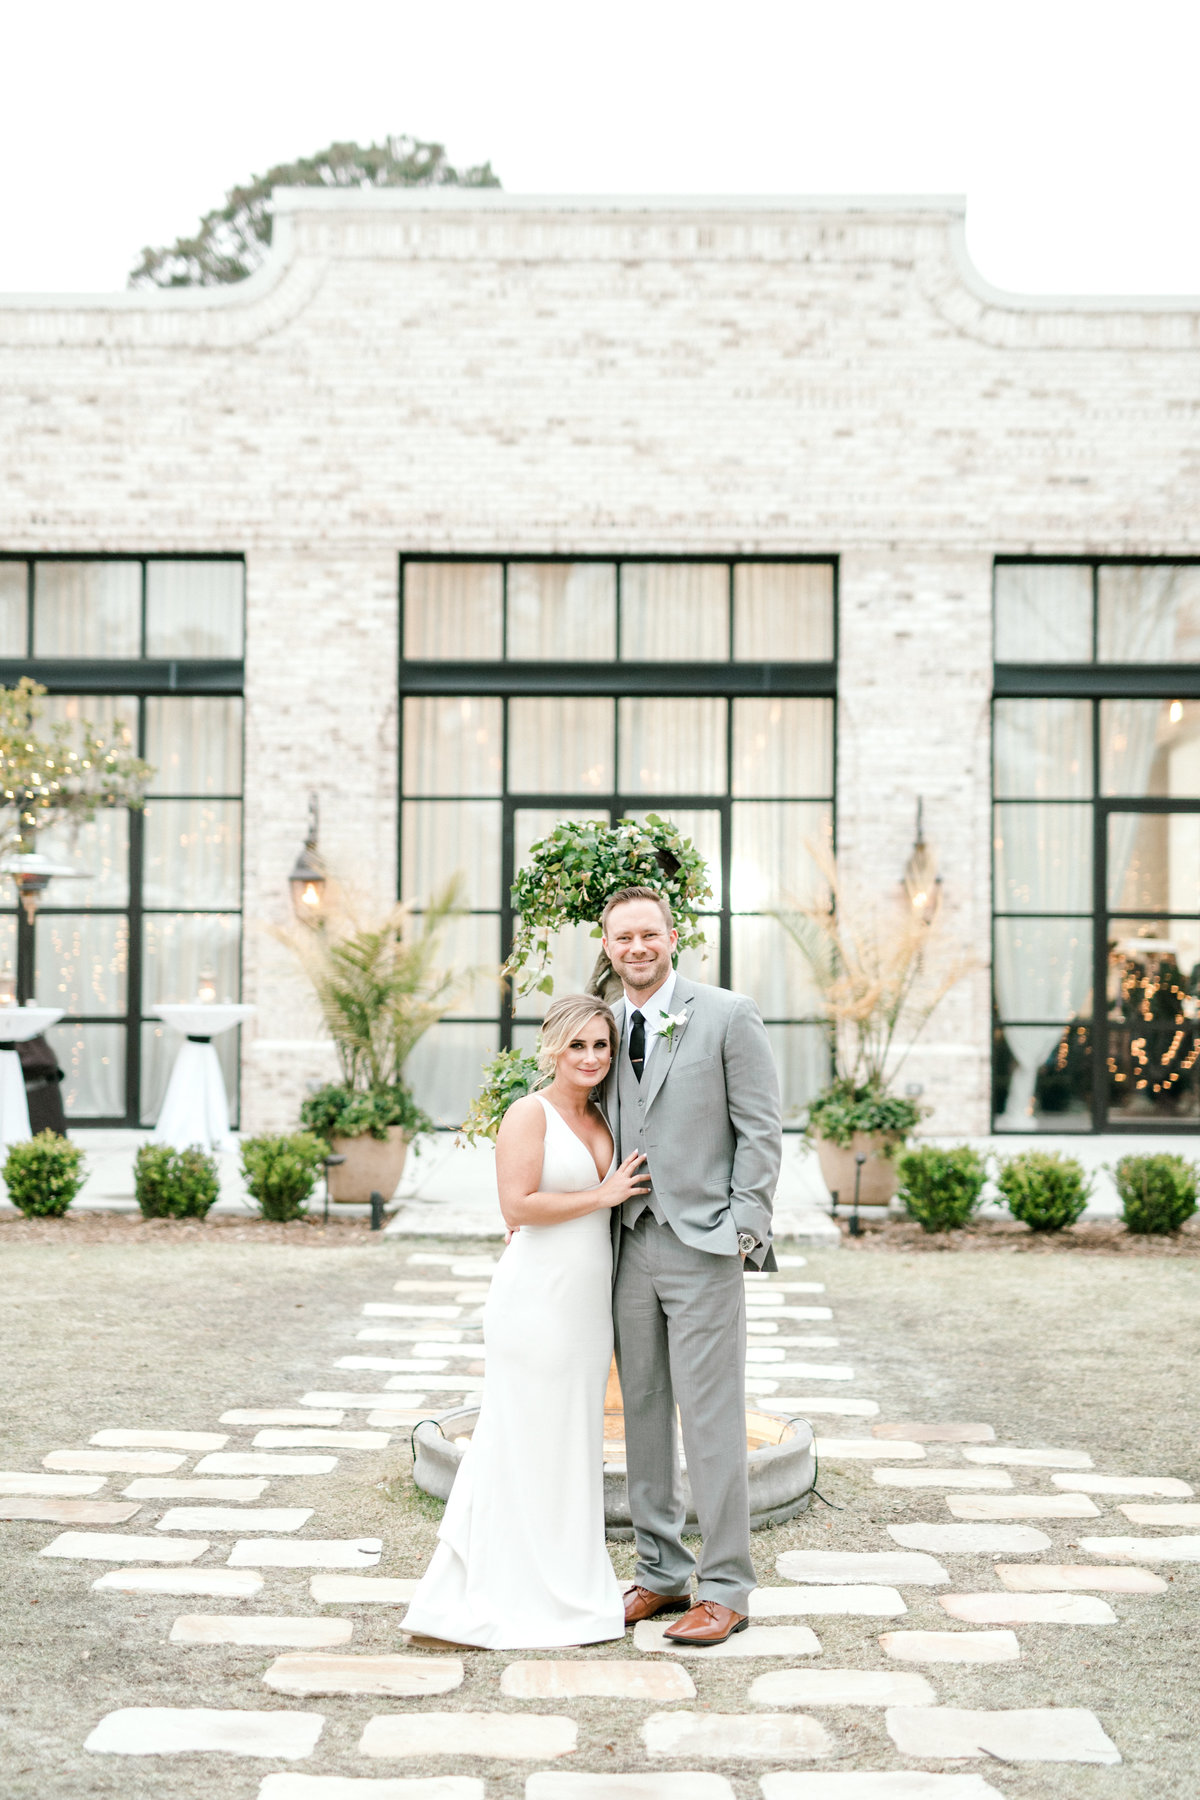 Kelsey&Ray_WrightsvilleManor_KatherynJeannePhotography-4823